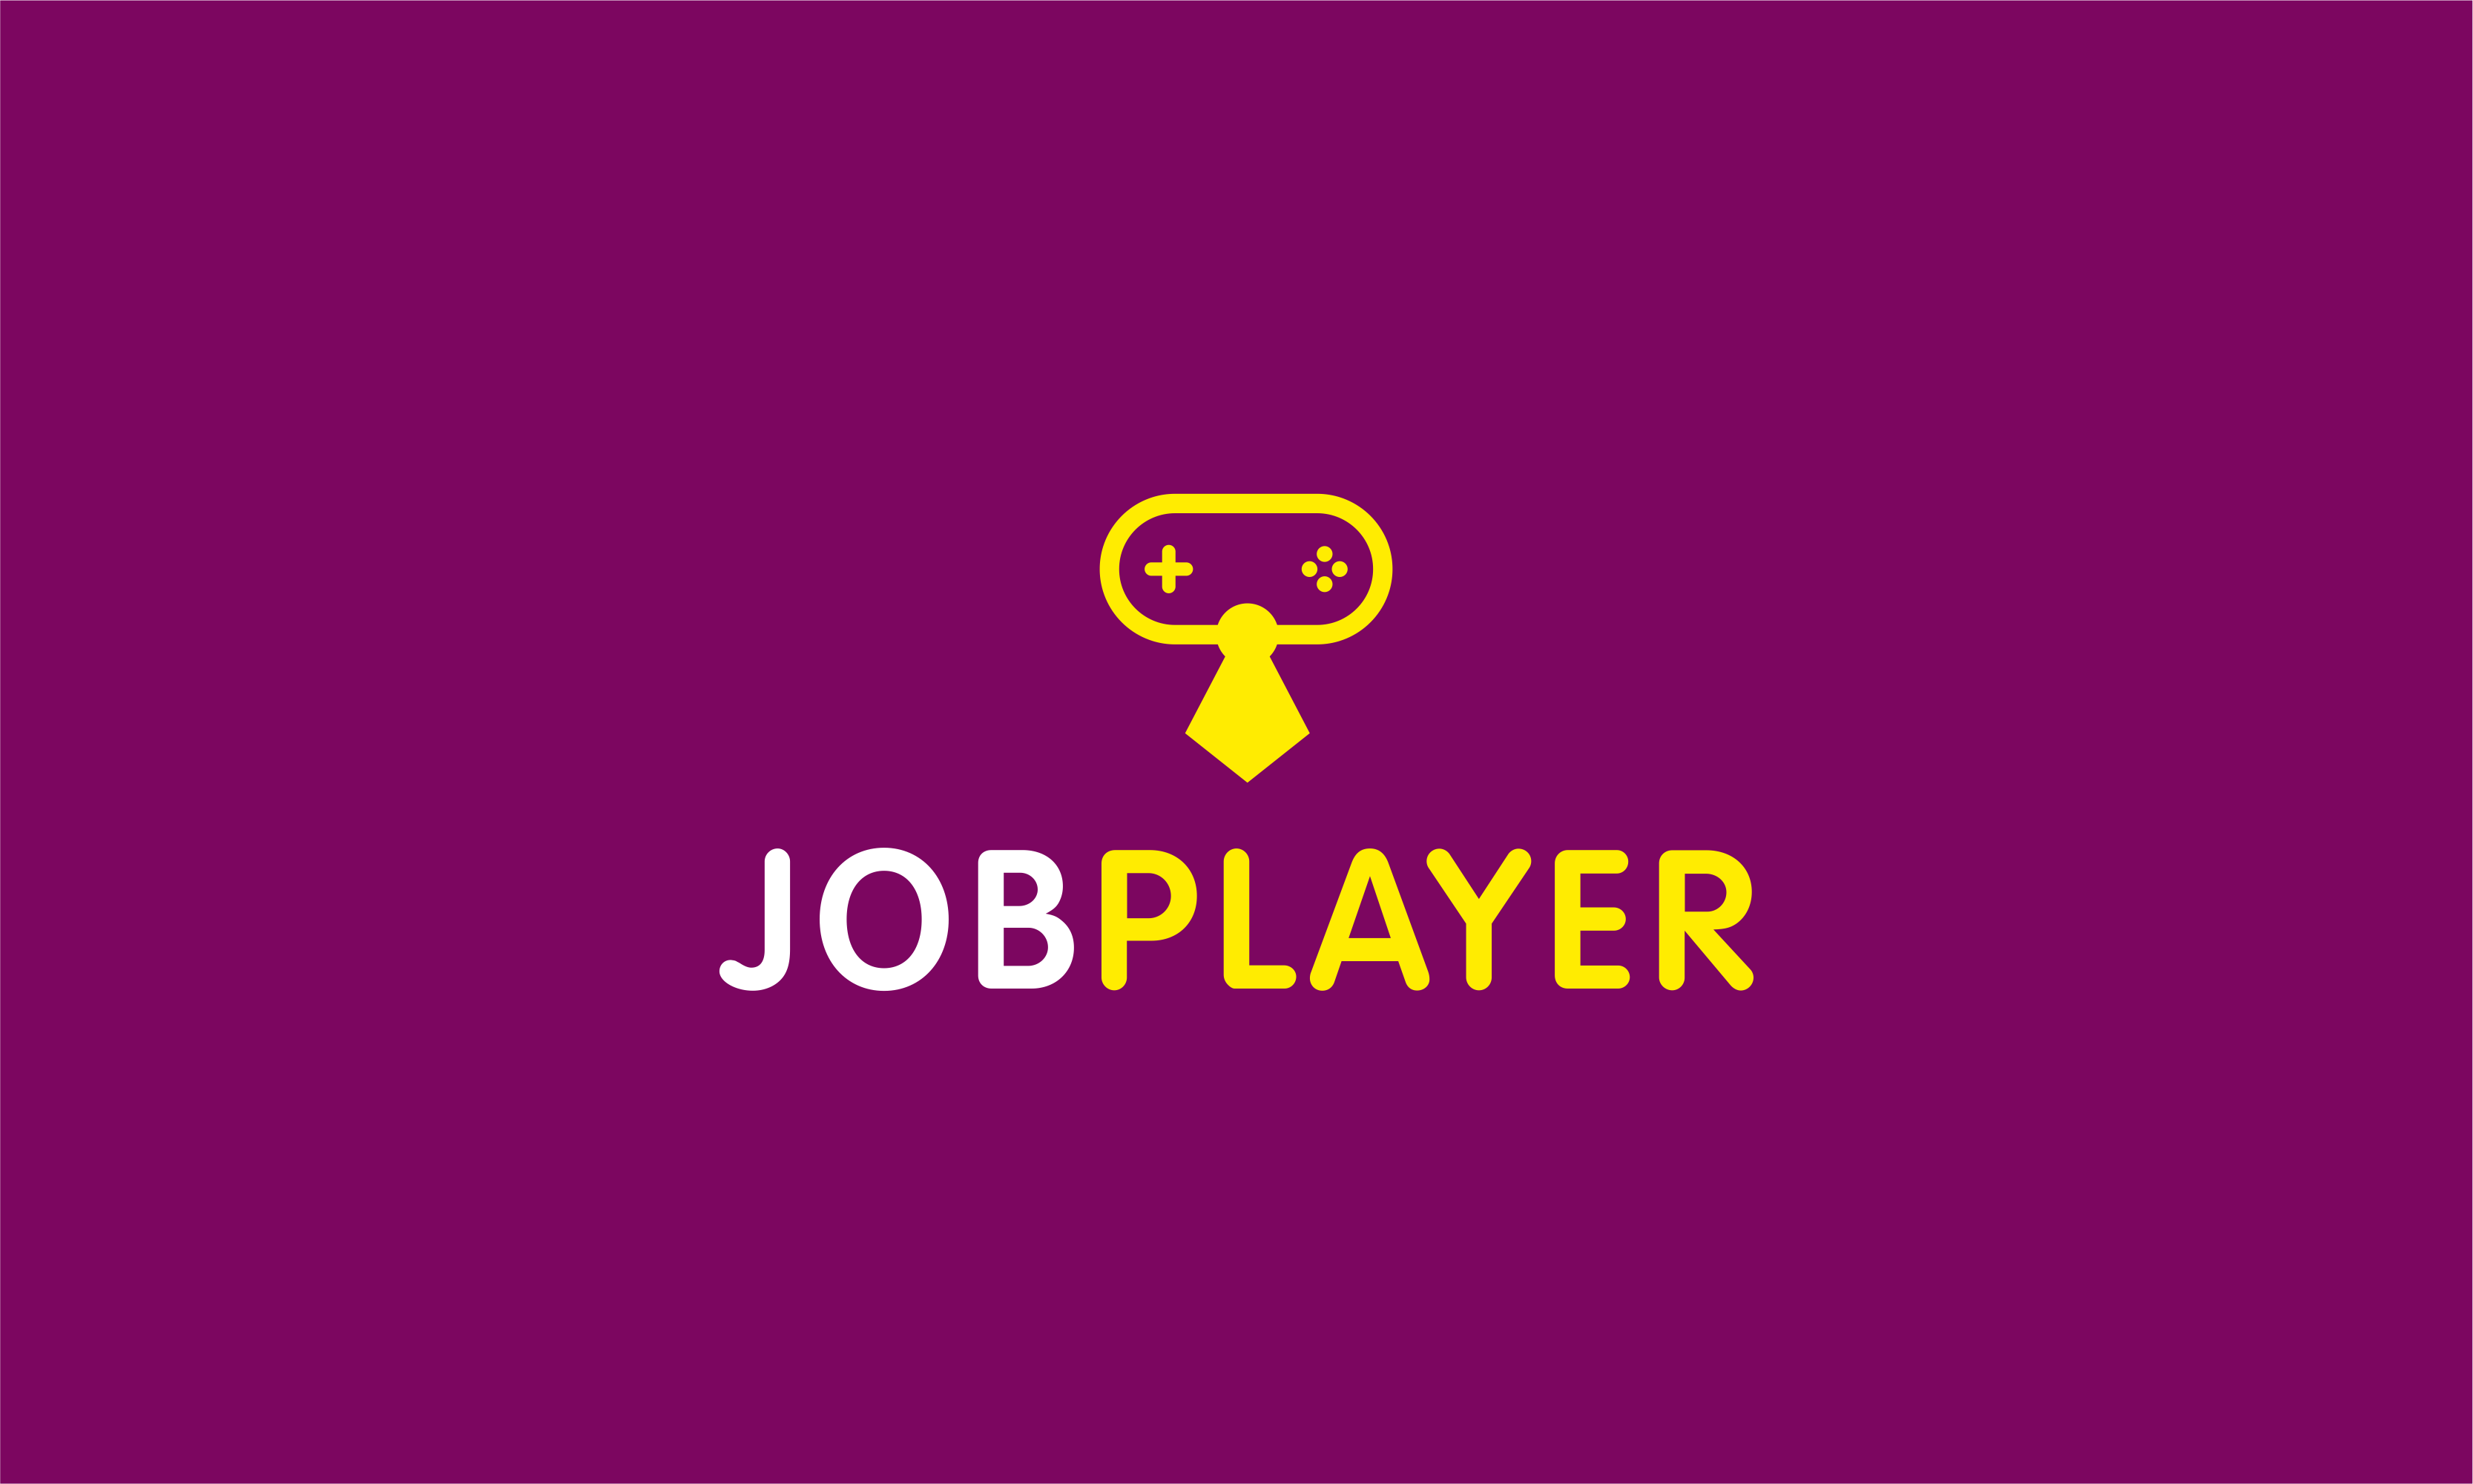 Jobplayer